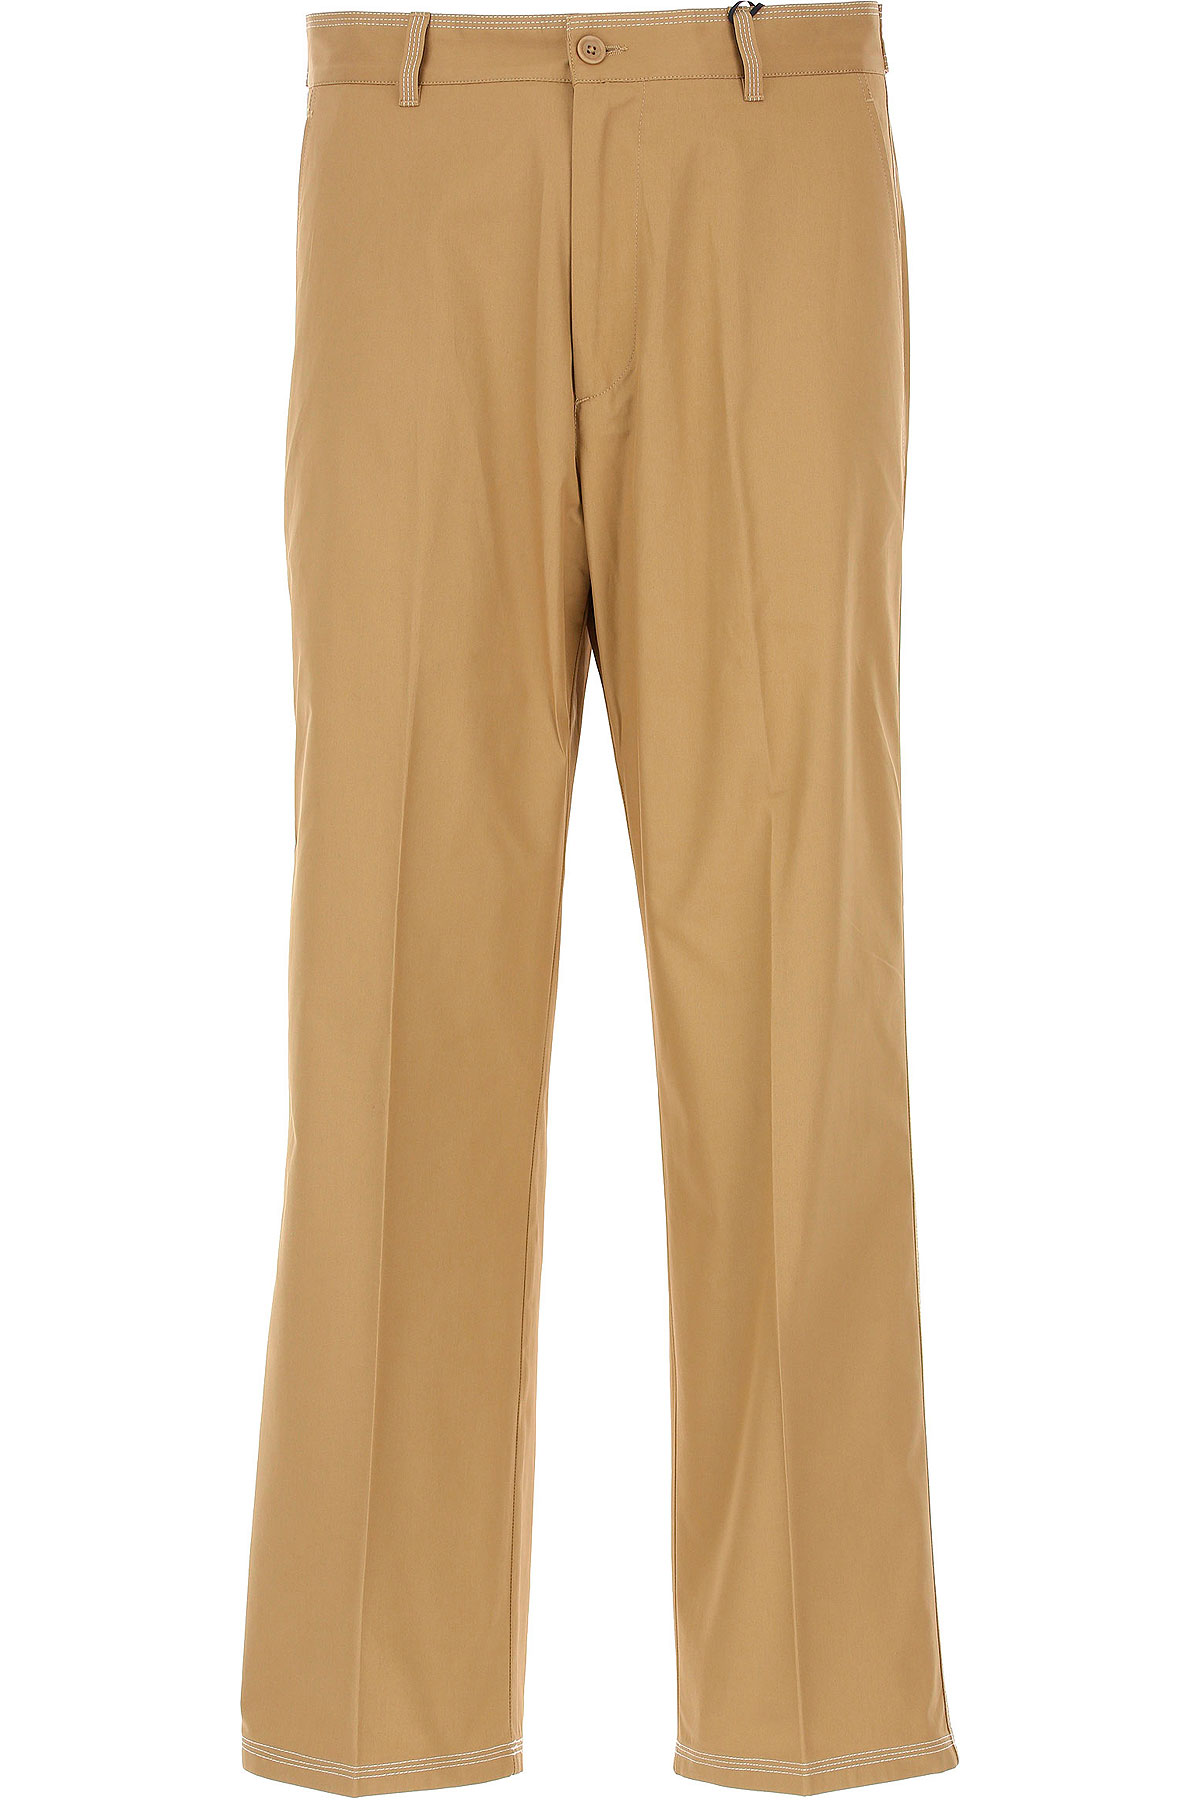 Tommy Hilfiger Pants for Men On Sale in Outlet, cappuccino, Cotton, 2019, 30 31 32